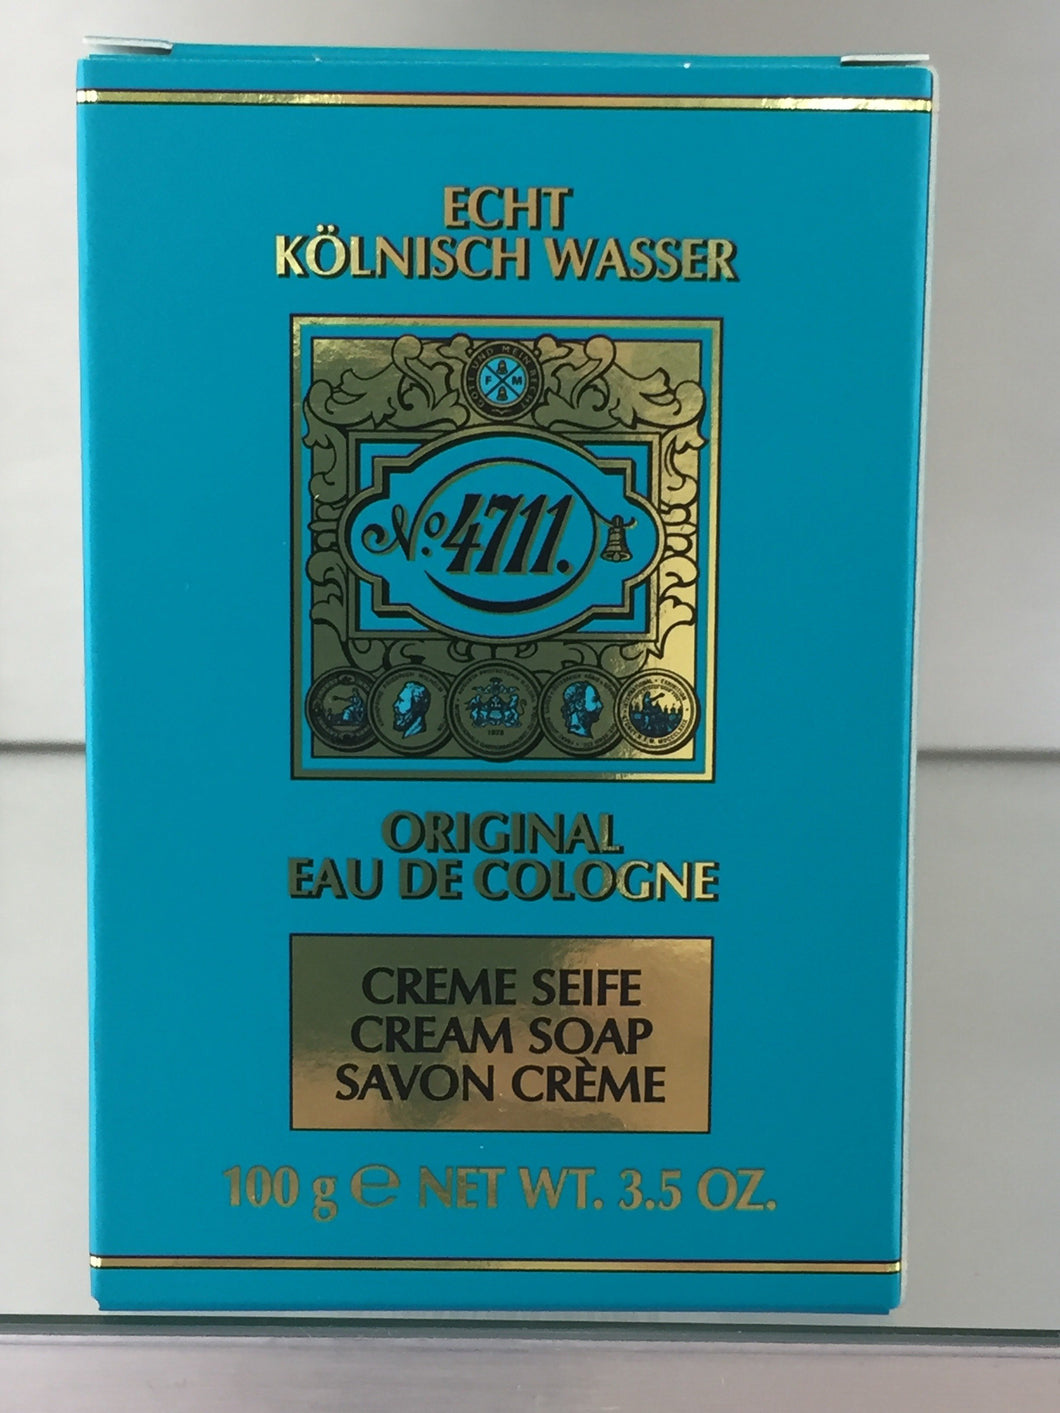 4711 Original Eau de Cologne, Cream Soap - 100gram - 4711